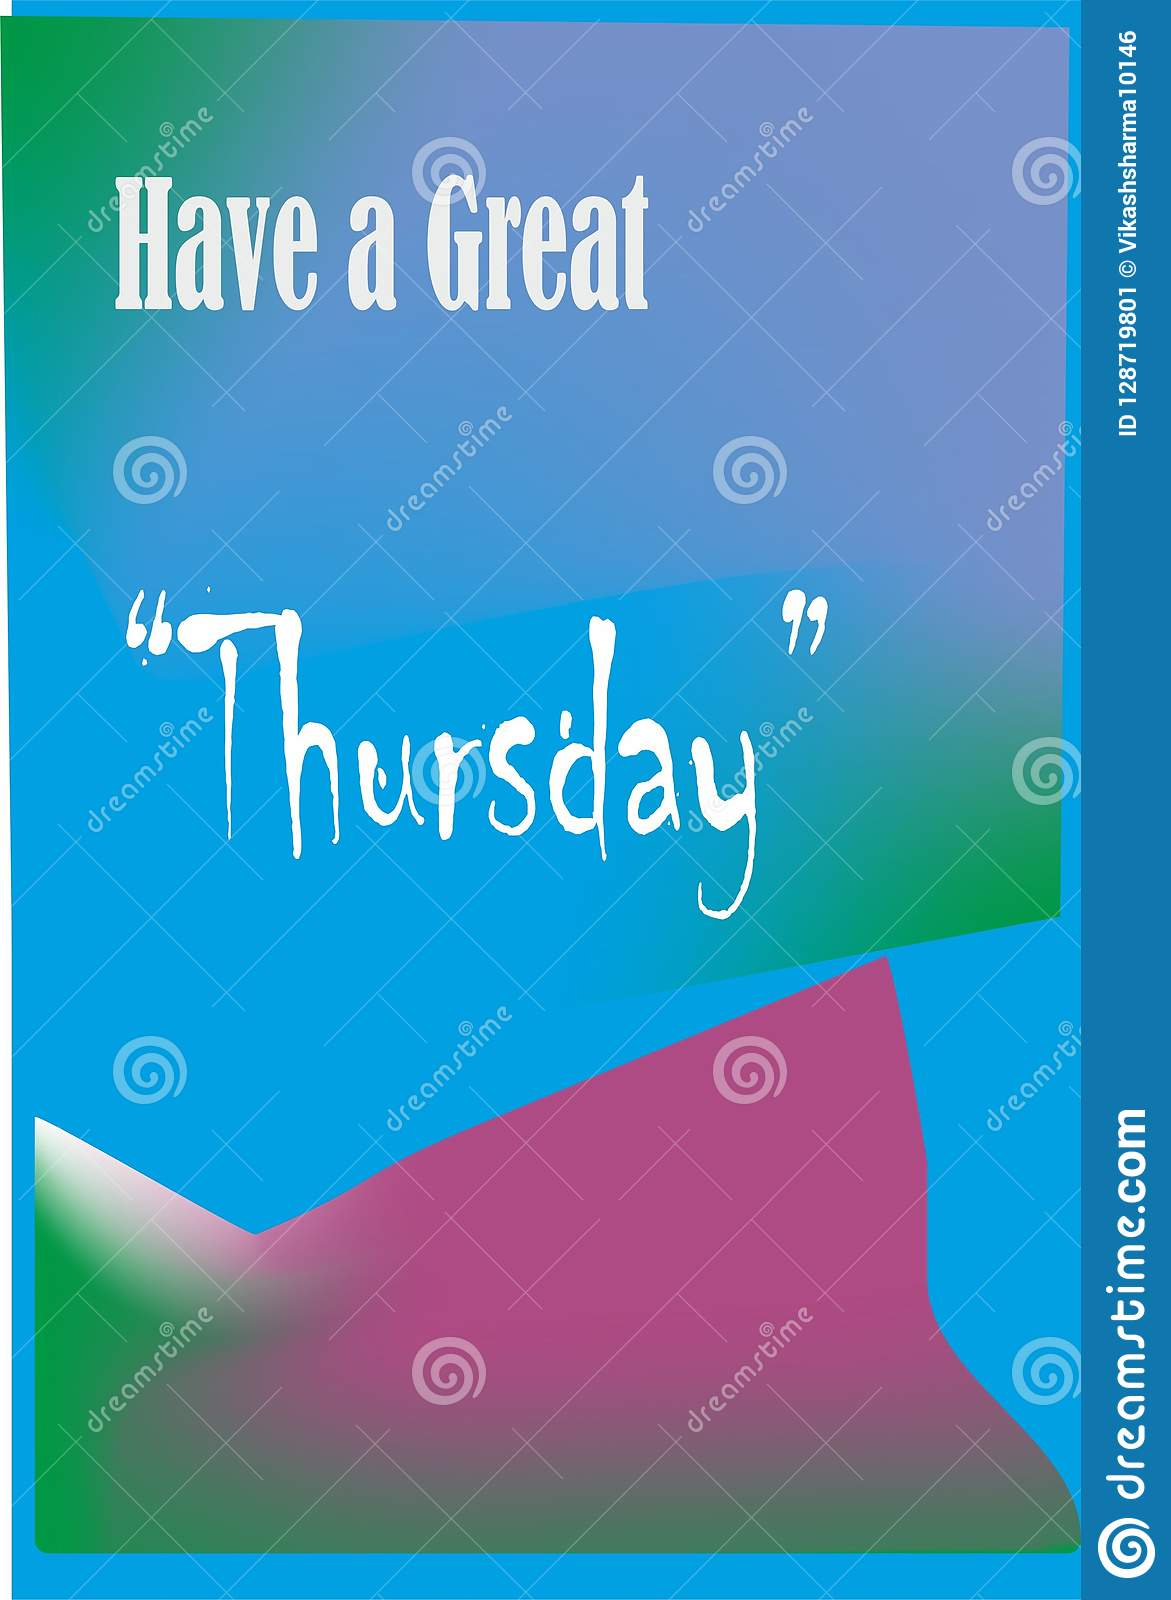 design and day wishes quotes stock illustration illustration of